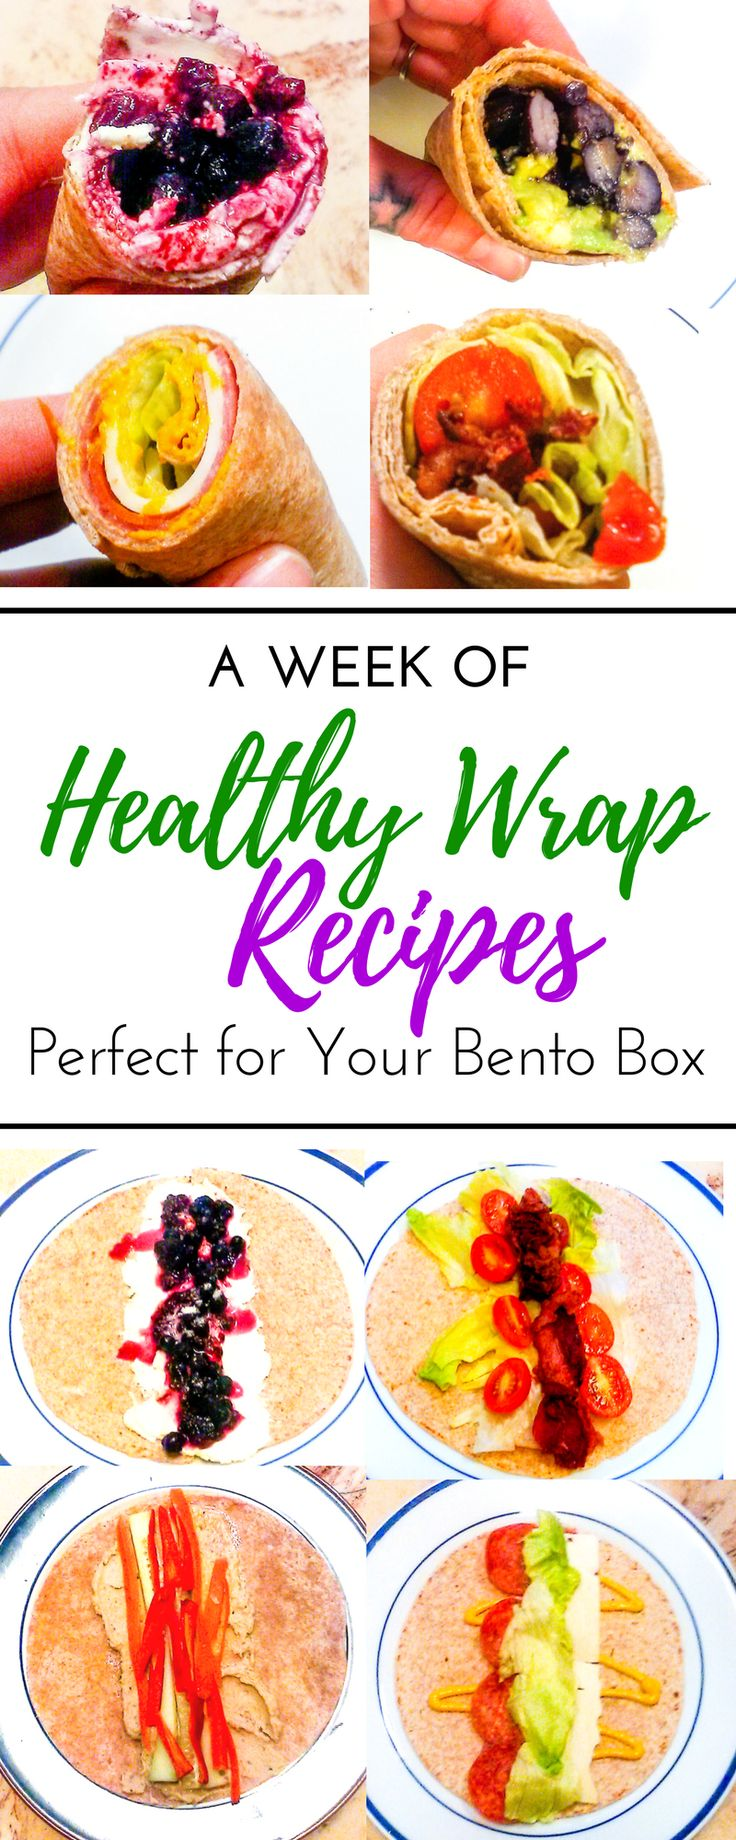 6 creative healthy and easy lunchbox wrap recipes for kids and for adults! Italian pinwheel, vegetarian wraps, and cold tortilla wraps perfect for breakfast, lunch, or dinner. These no sandwich bento box recipes are perfect lunch ideas for work, for school, or for home. With all these ideas for toddlers, for adults, and even for teenagers you are sure to please everyone in the family on a budget.  #healthysnacks #healthyrecipes #schoollunchideas #bentoboxideas